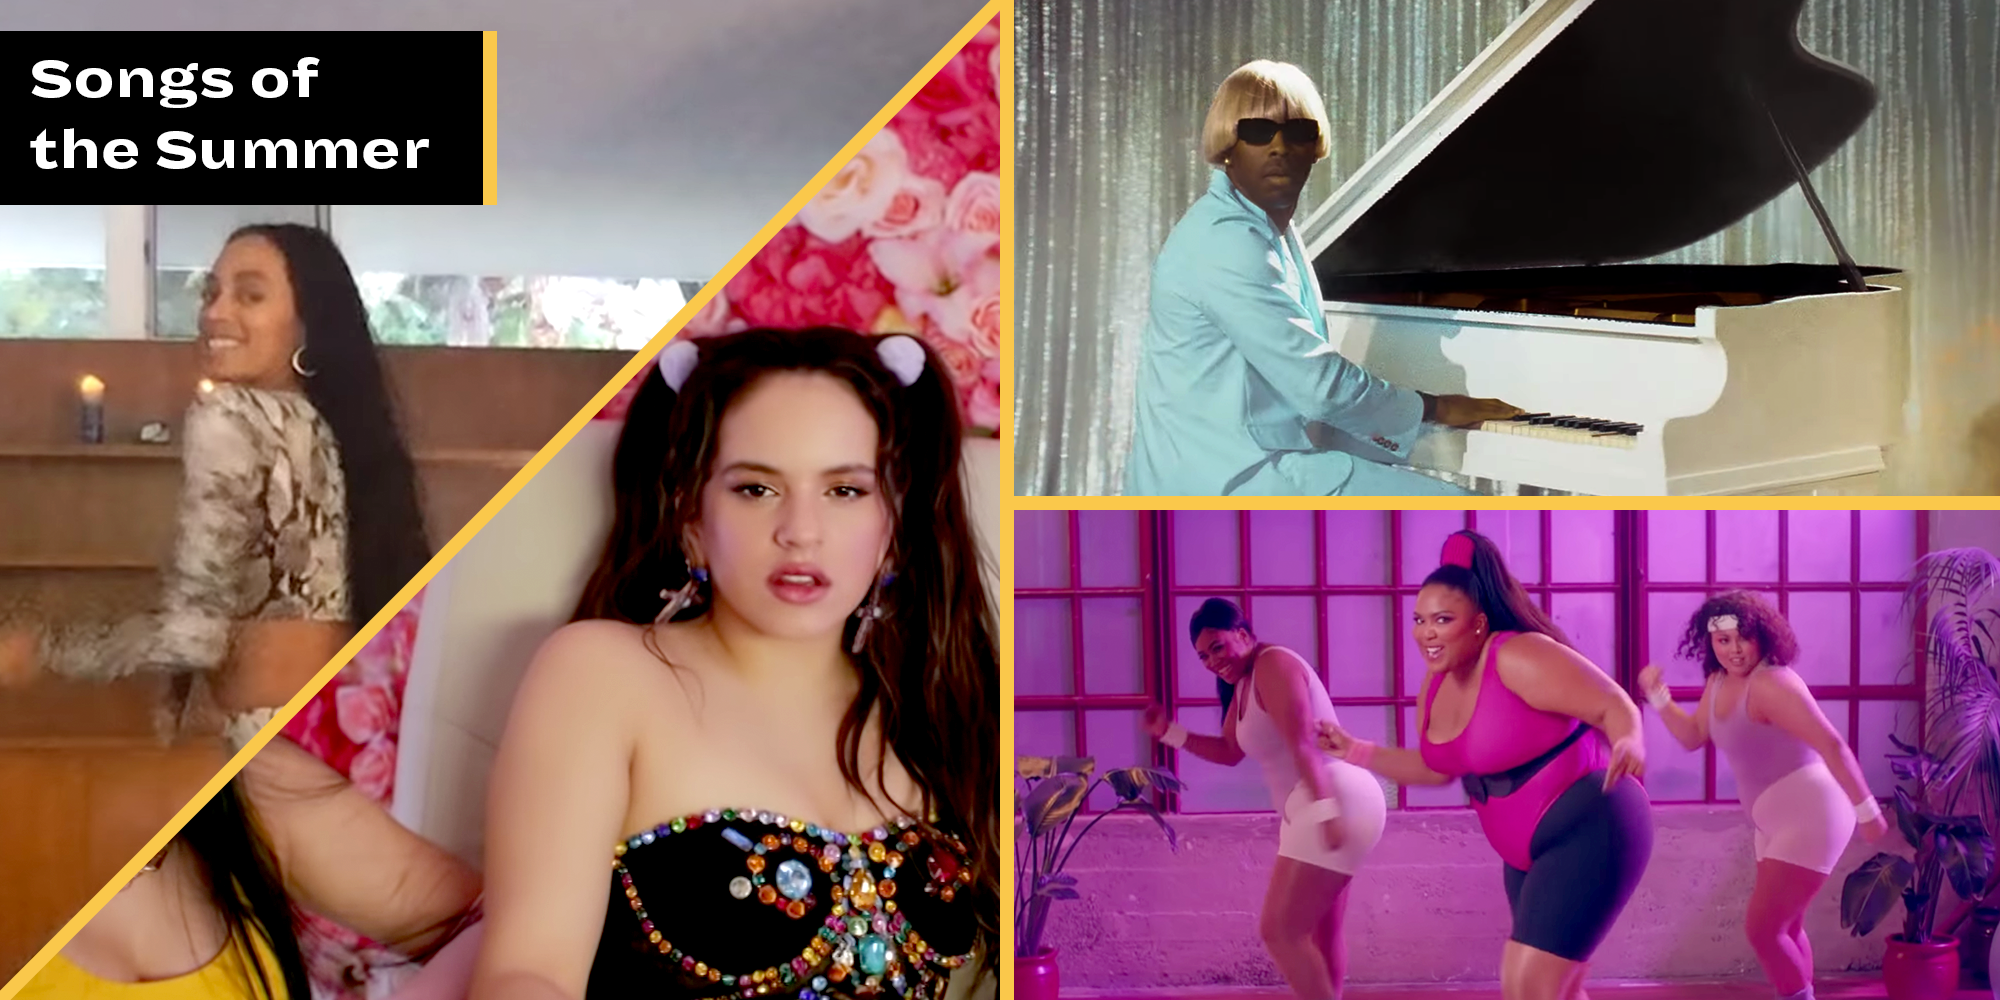 popular commercial songs right now